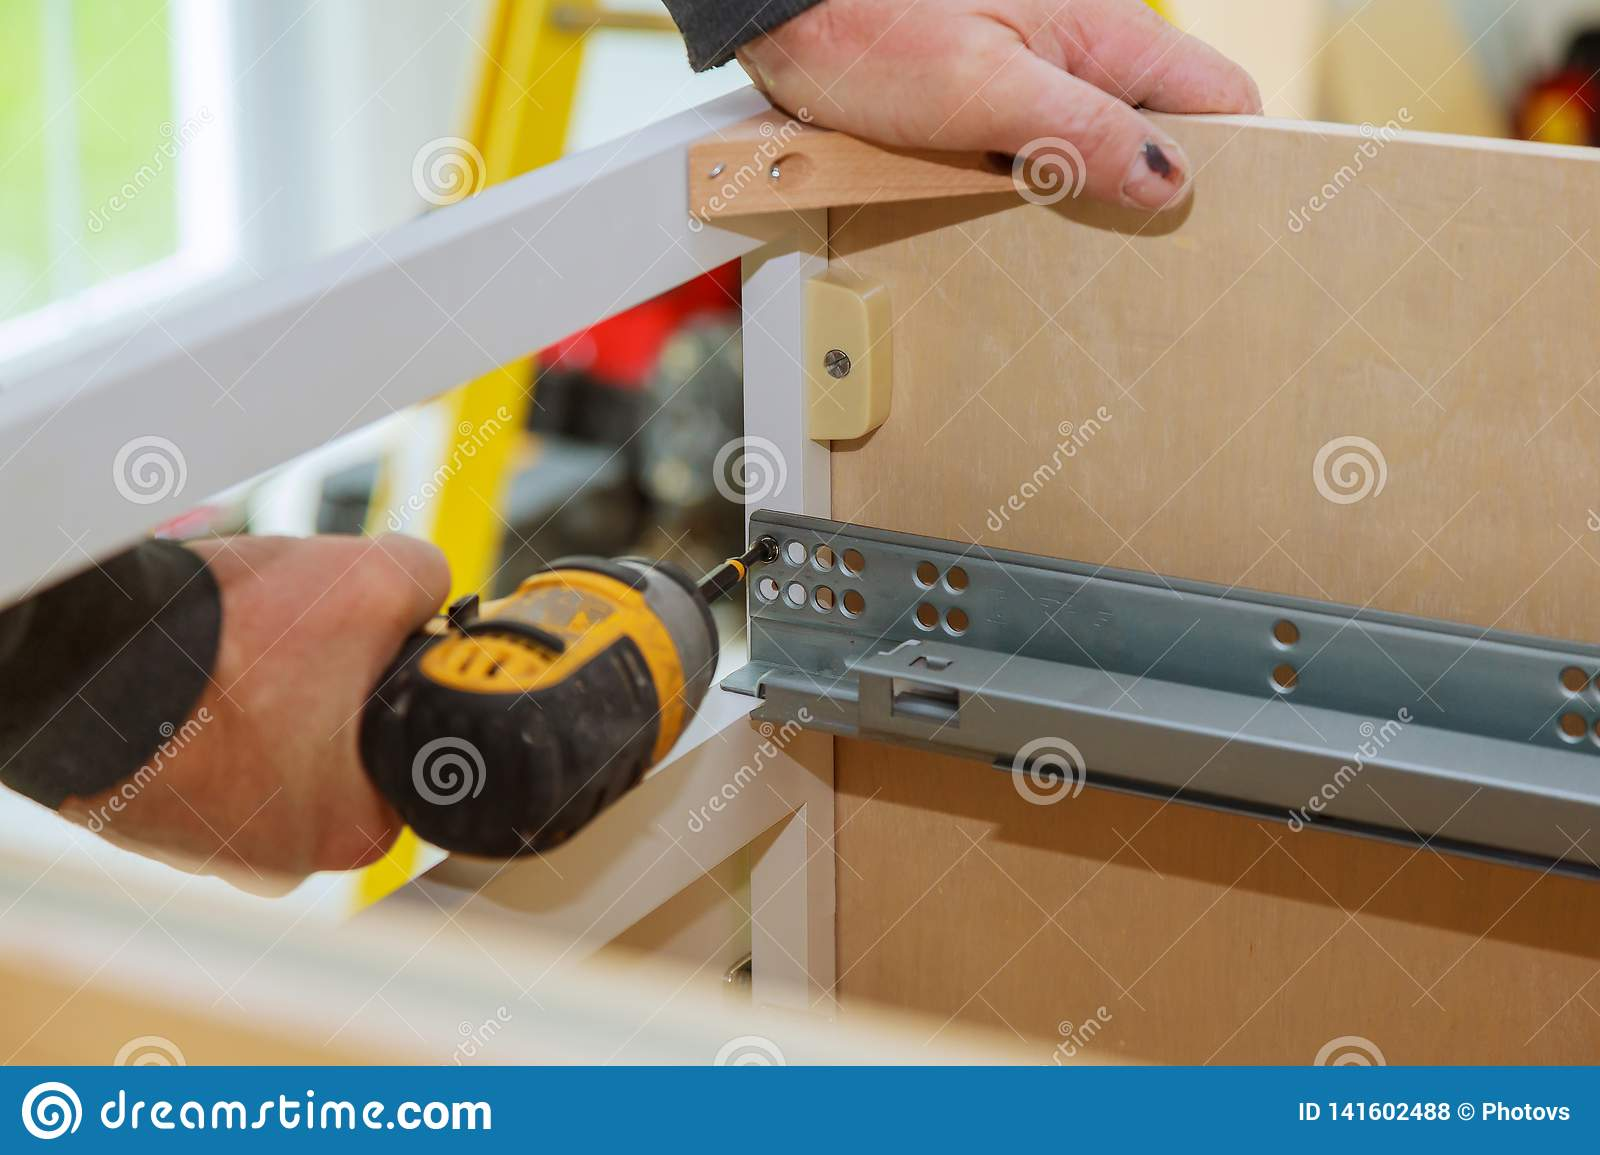 Mounting Furniture With Screwdriver Fixing Cabinet Drawers Hinge Adjustment On Kitchen Cabinets Stock Photo Image Of Hinge Carpenter 141602488